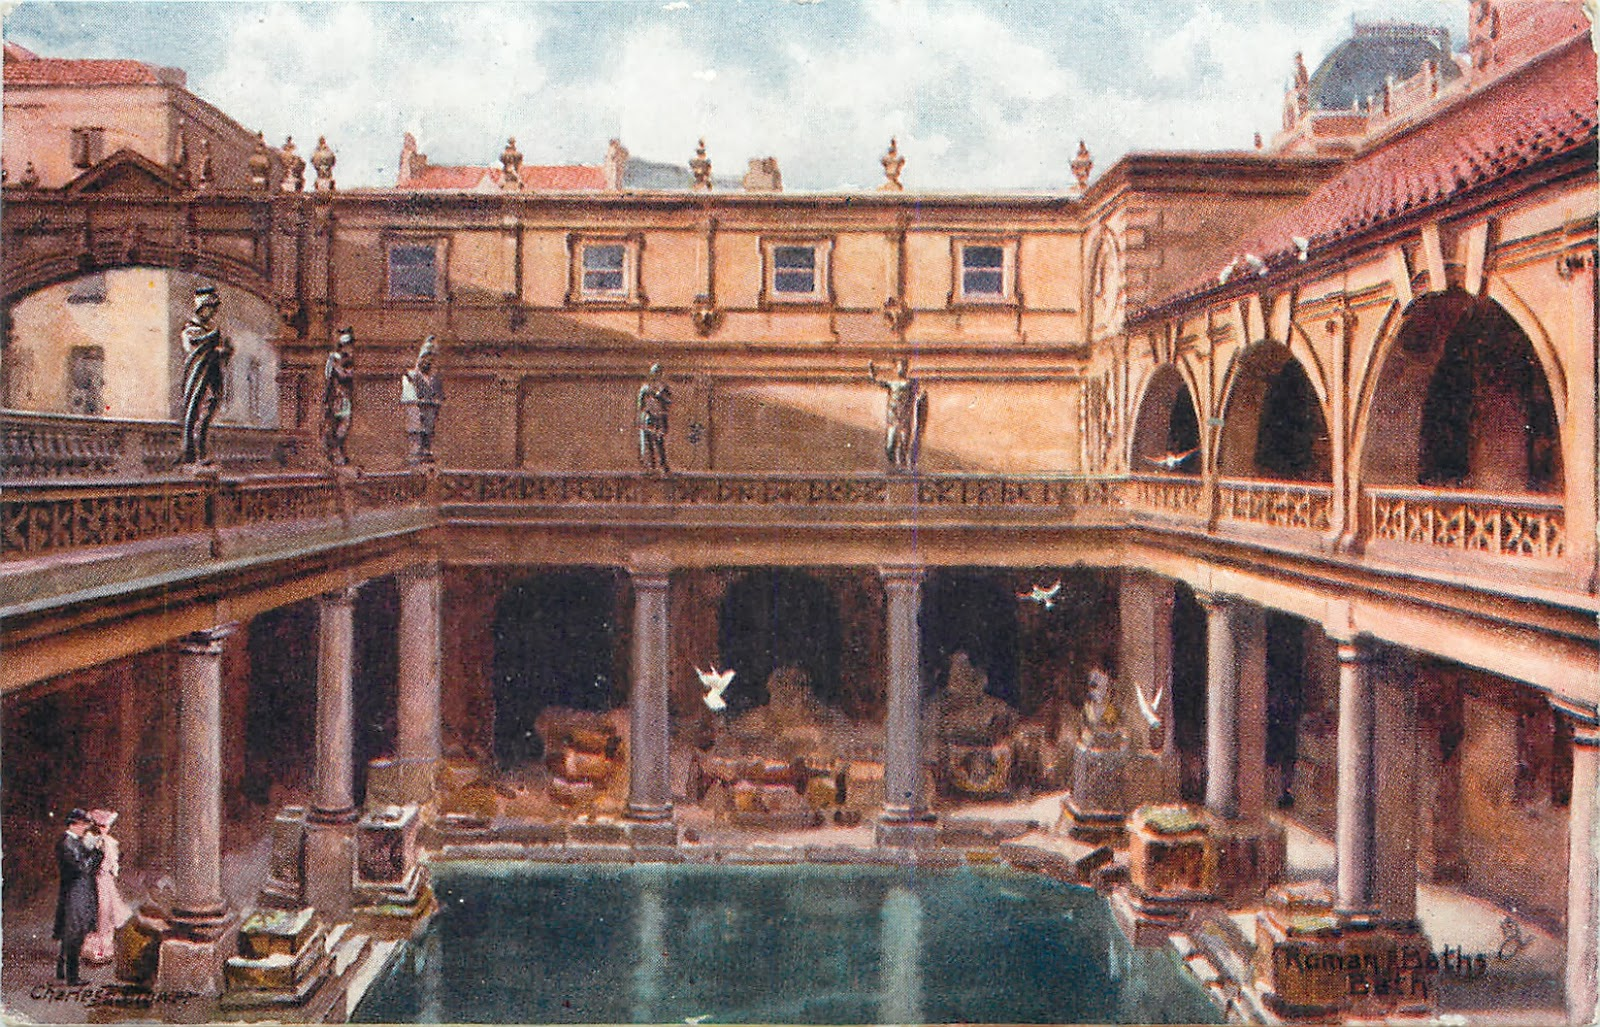 Andrew Simpson When In Bath Visit The Roman Baths I Did